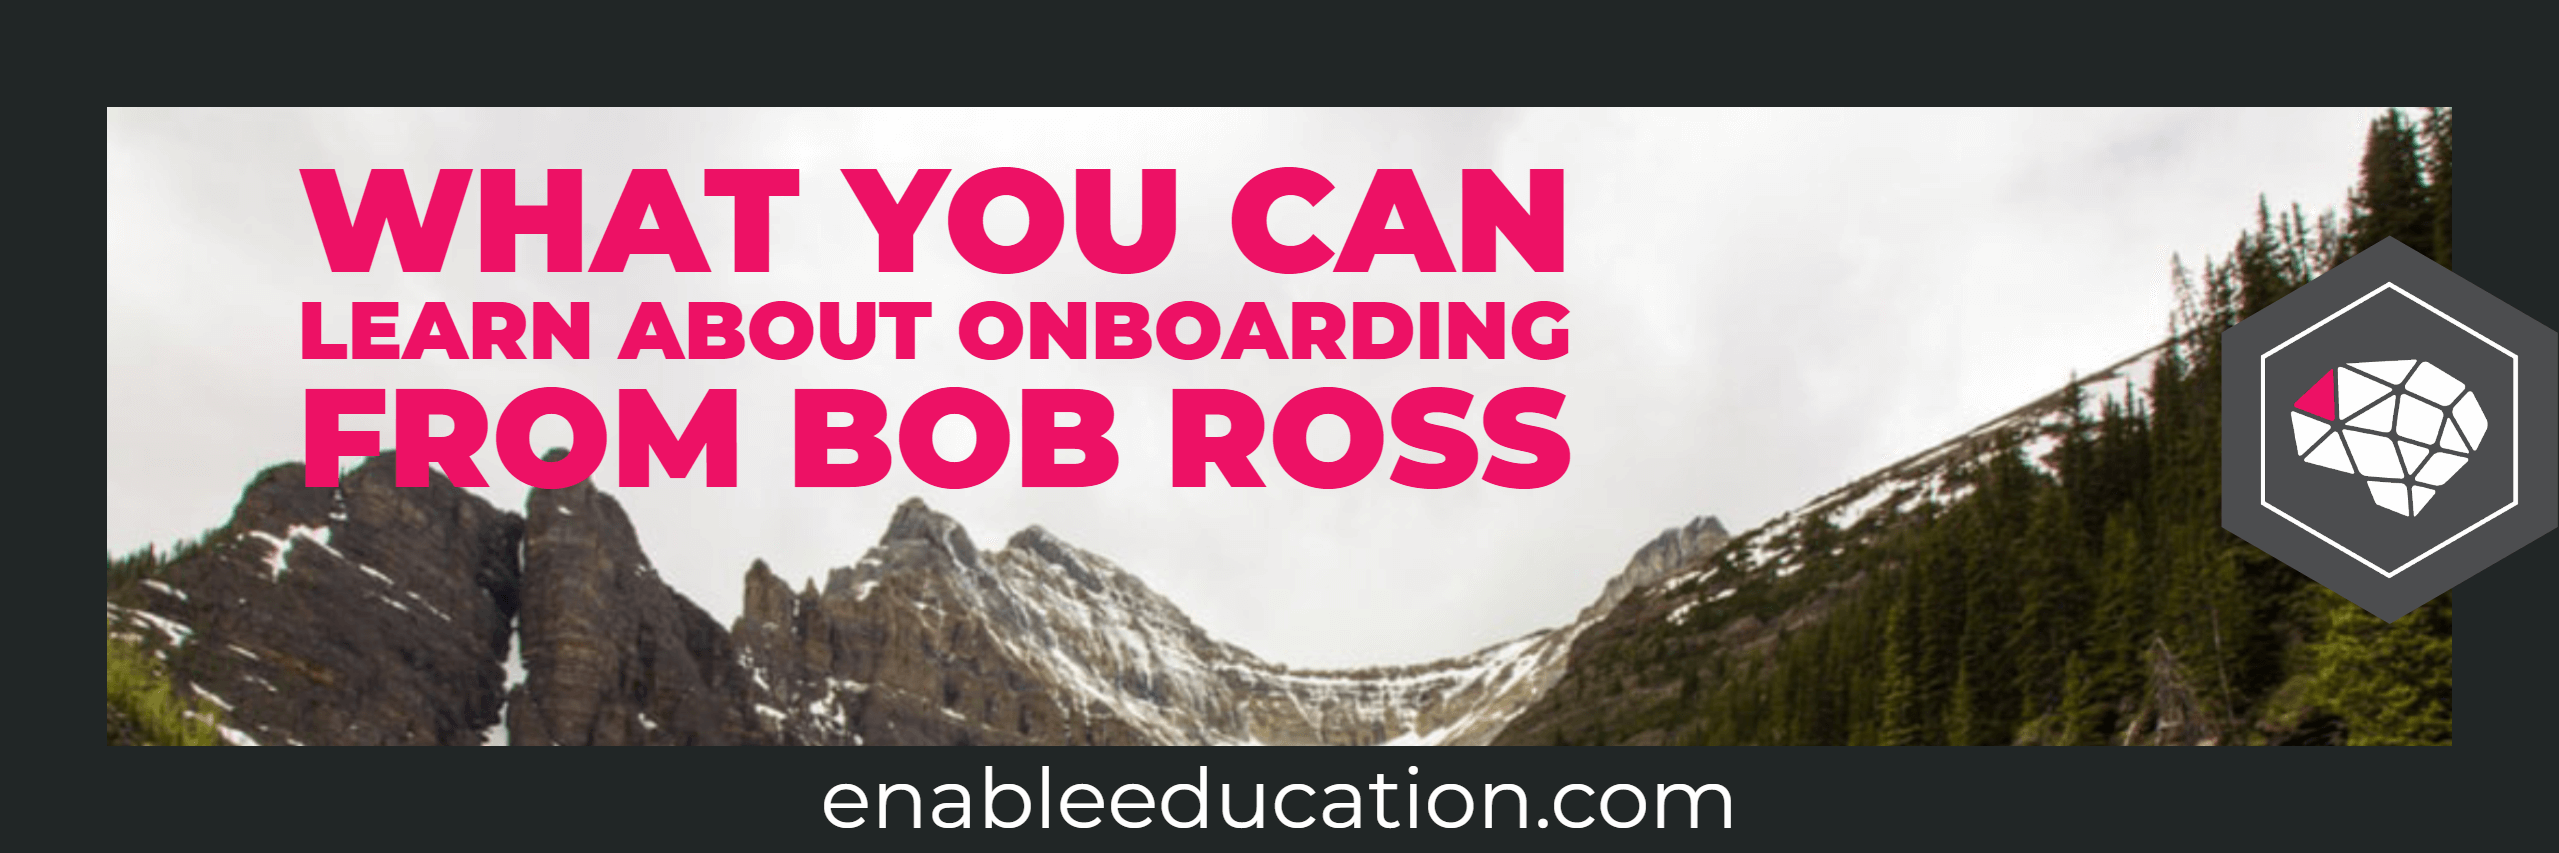 What You Can Learn About Onboarding From Bob Ross